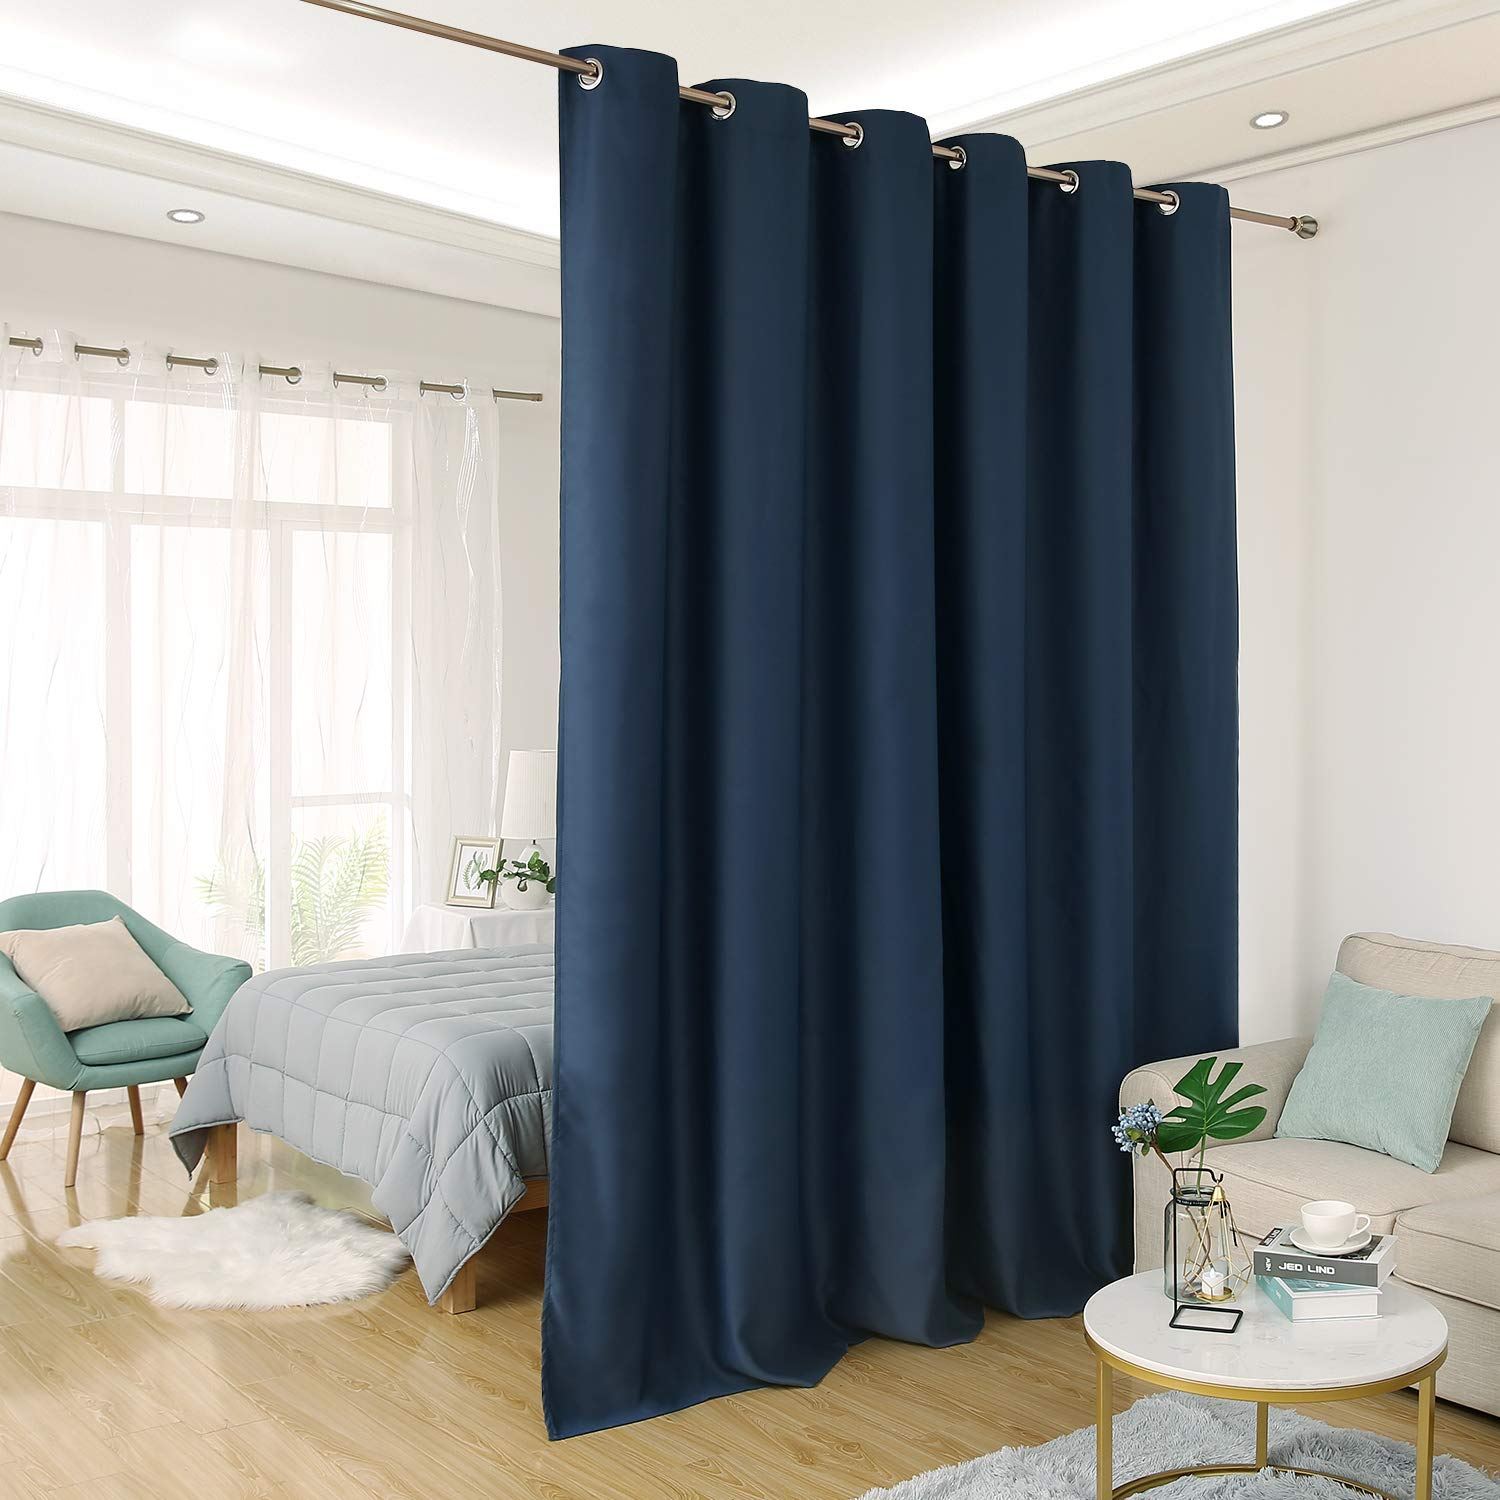 Navy bluee 10ft Wide x 8ft Tall Deconovo Room Divider Curtain Extra Wide Curtains Privacy Grommet Thermal Insulated Room Darkening Panel Curtains for Sliding Door, 10ft Wide x 9ft Tall Greyish White 1 Panel